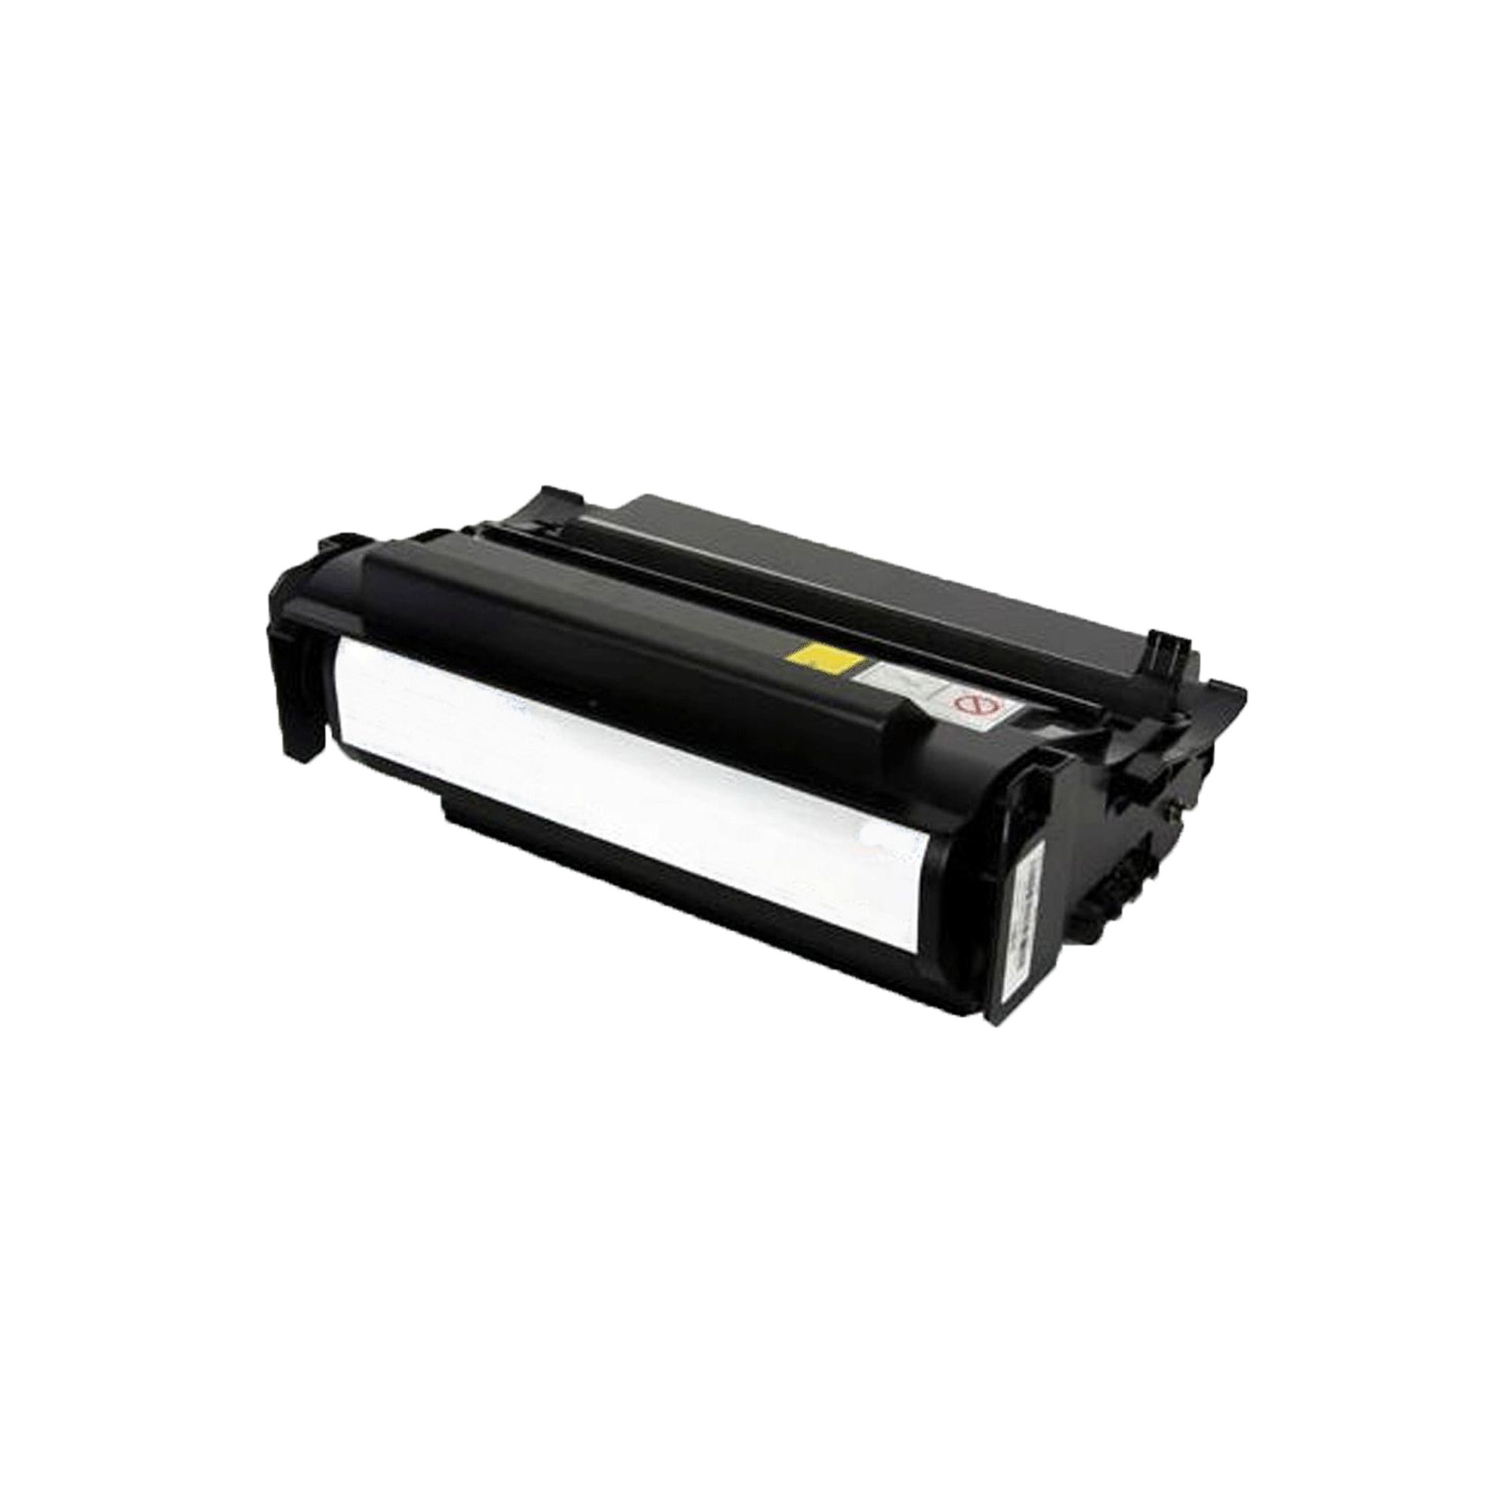 1 Pack New Compatible with Dell s2500 Toner Cartridge for Dell 2500 S2500 10000 page yield